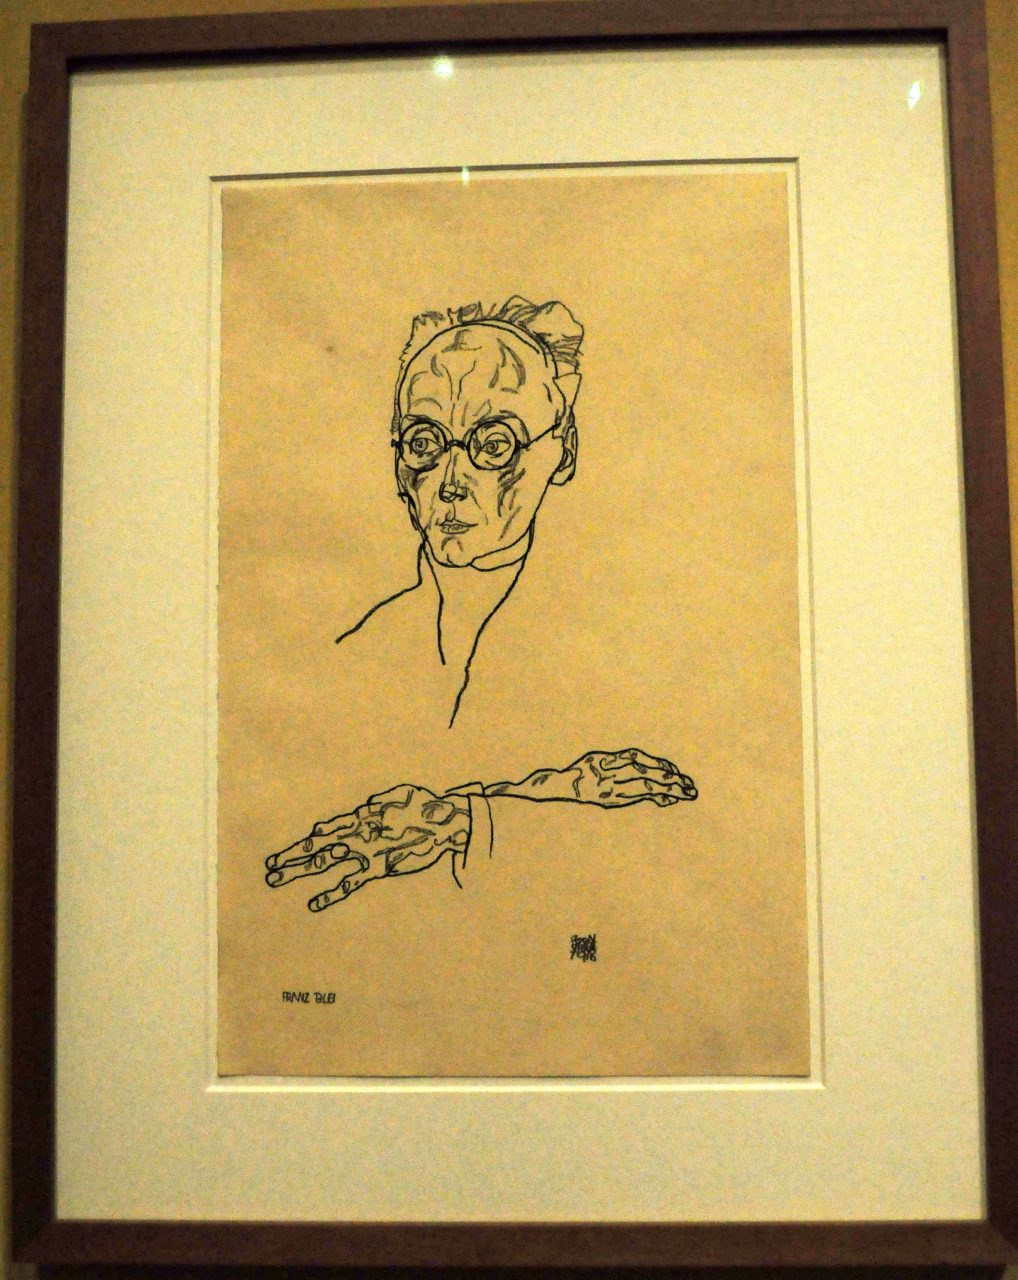 Egon Schiele EARLY WORKS Fondation Louis Vuitton Raluca Turcanasu ra-luca.me 2